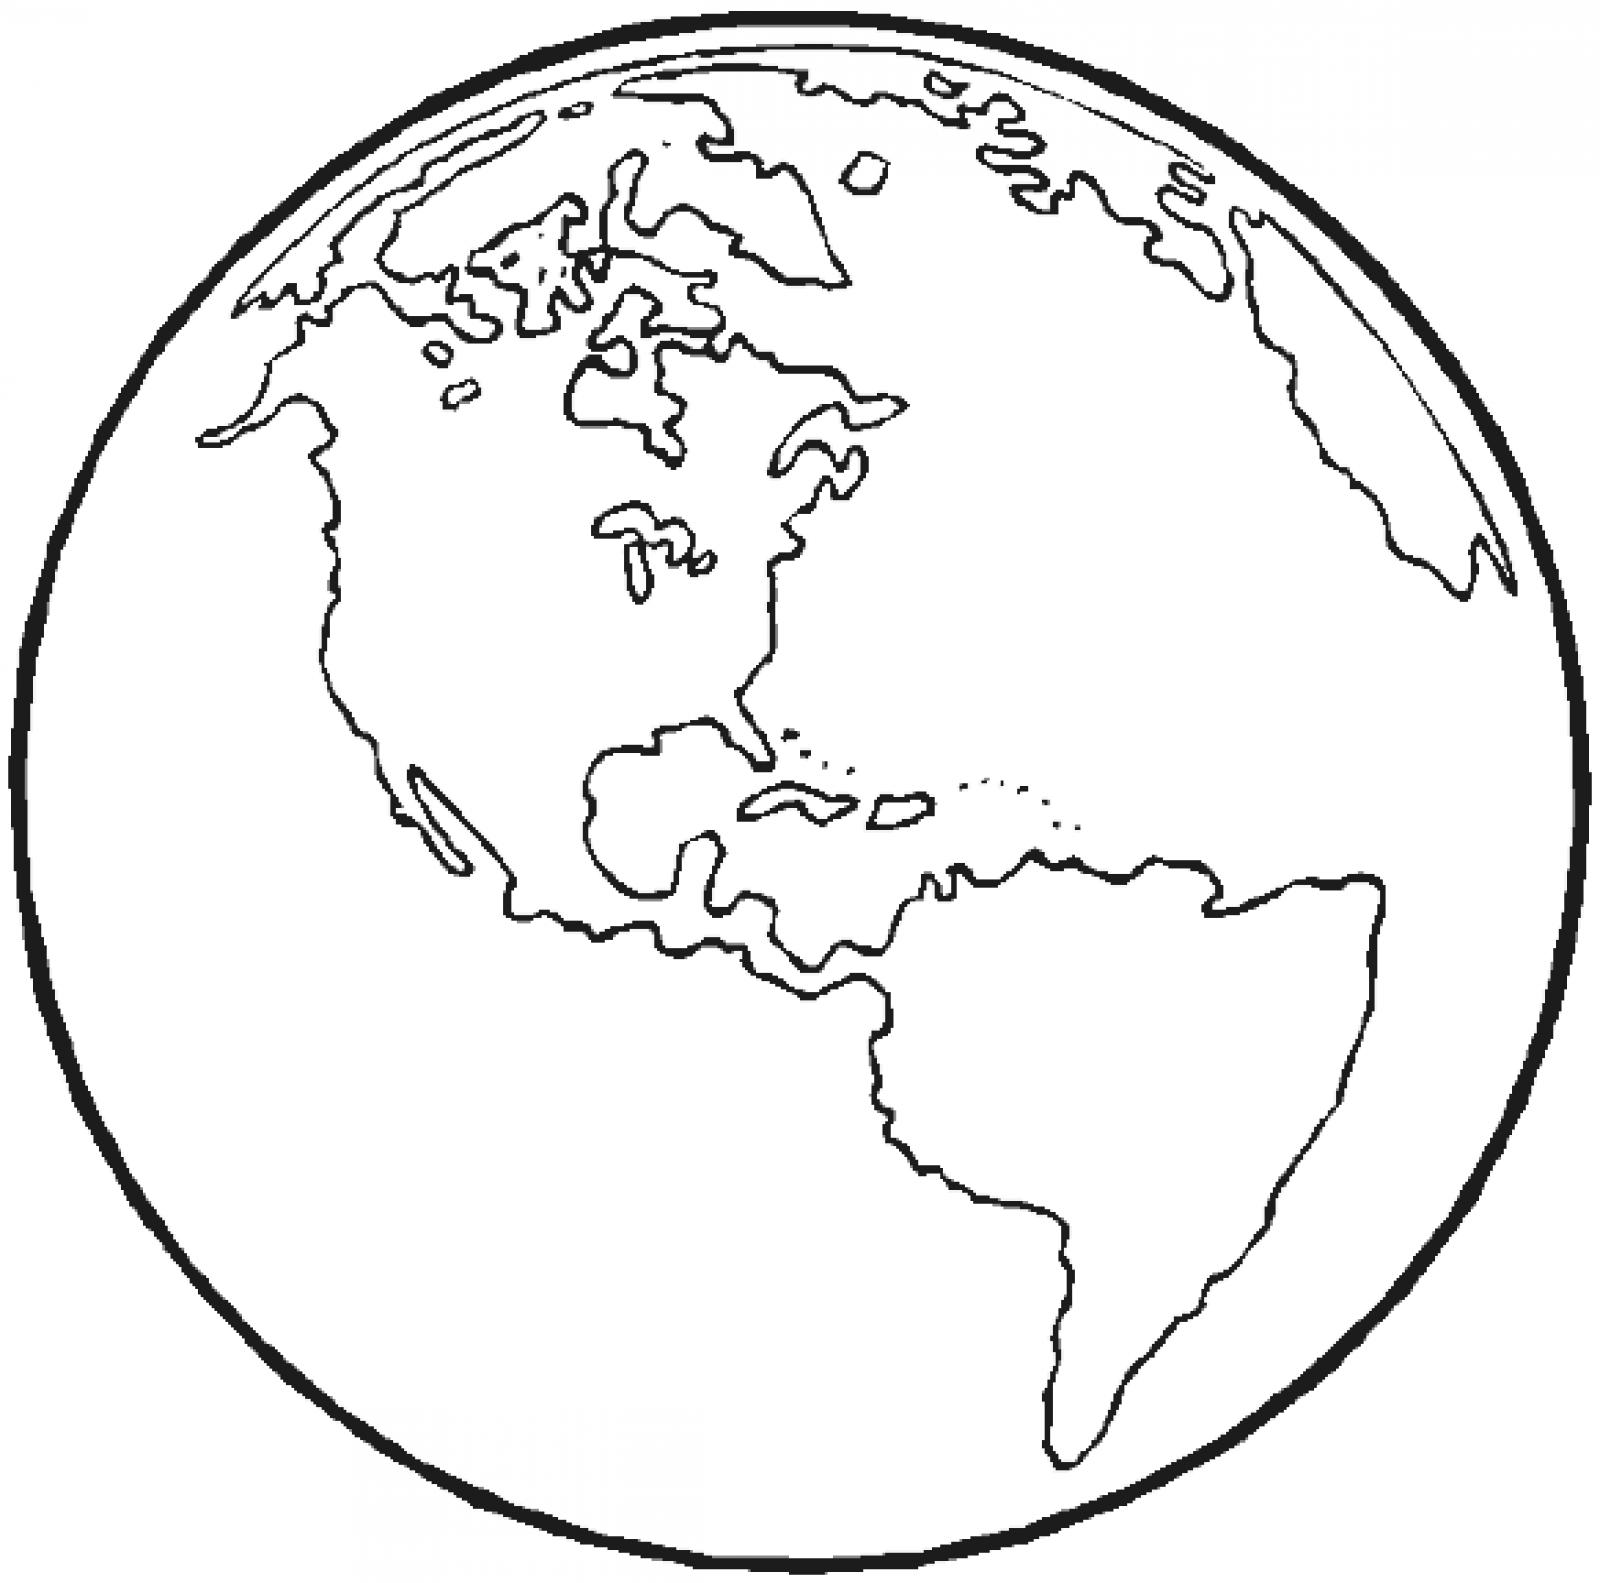 Line Drawing Earth : Line drawing earth clipart best